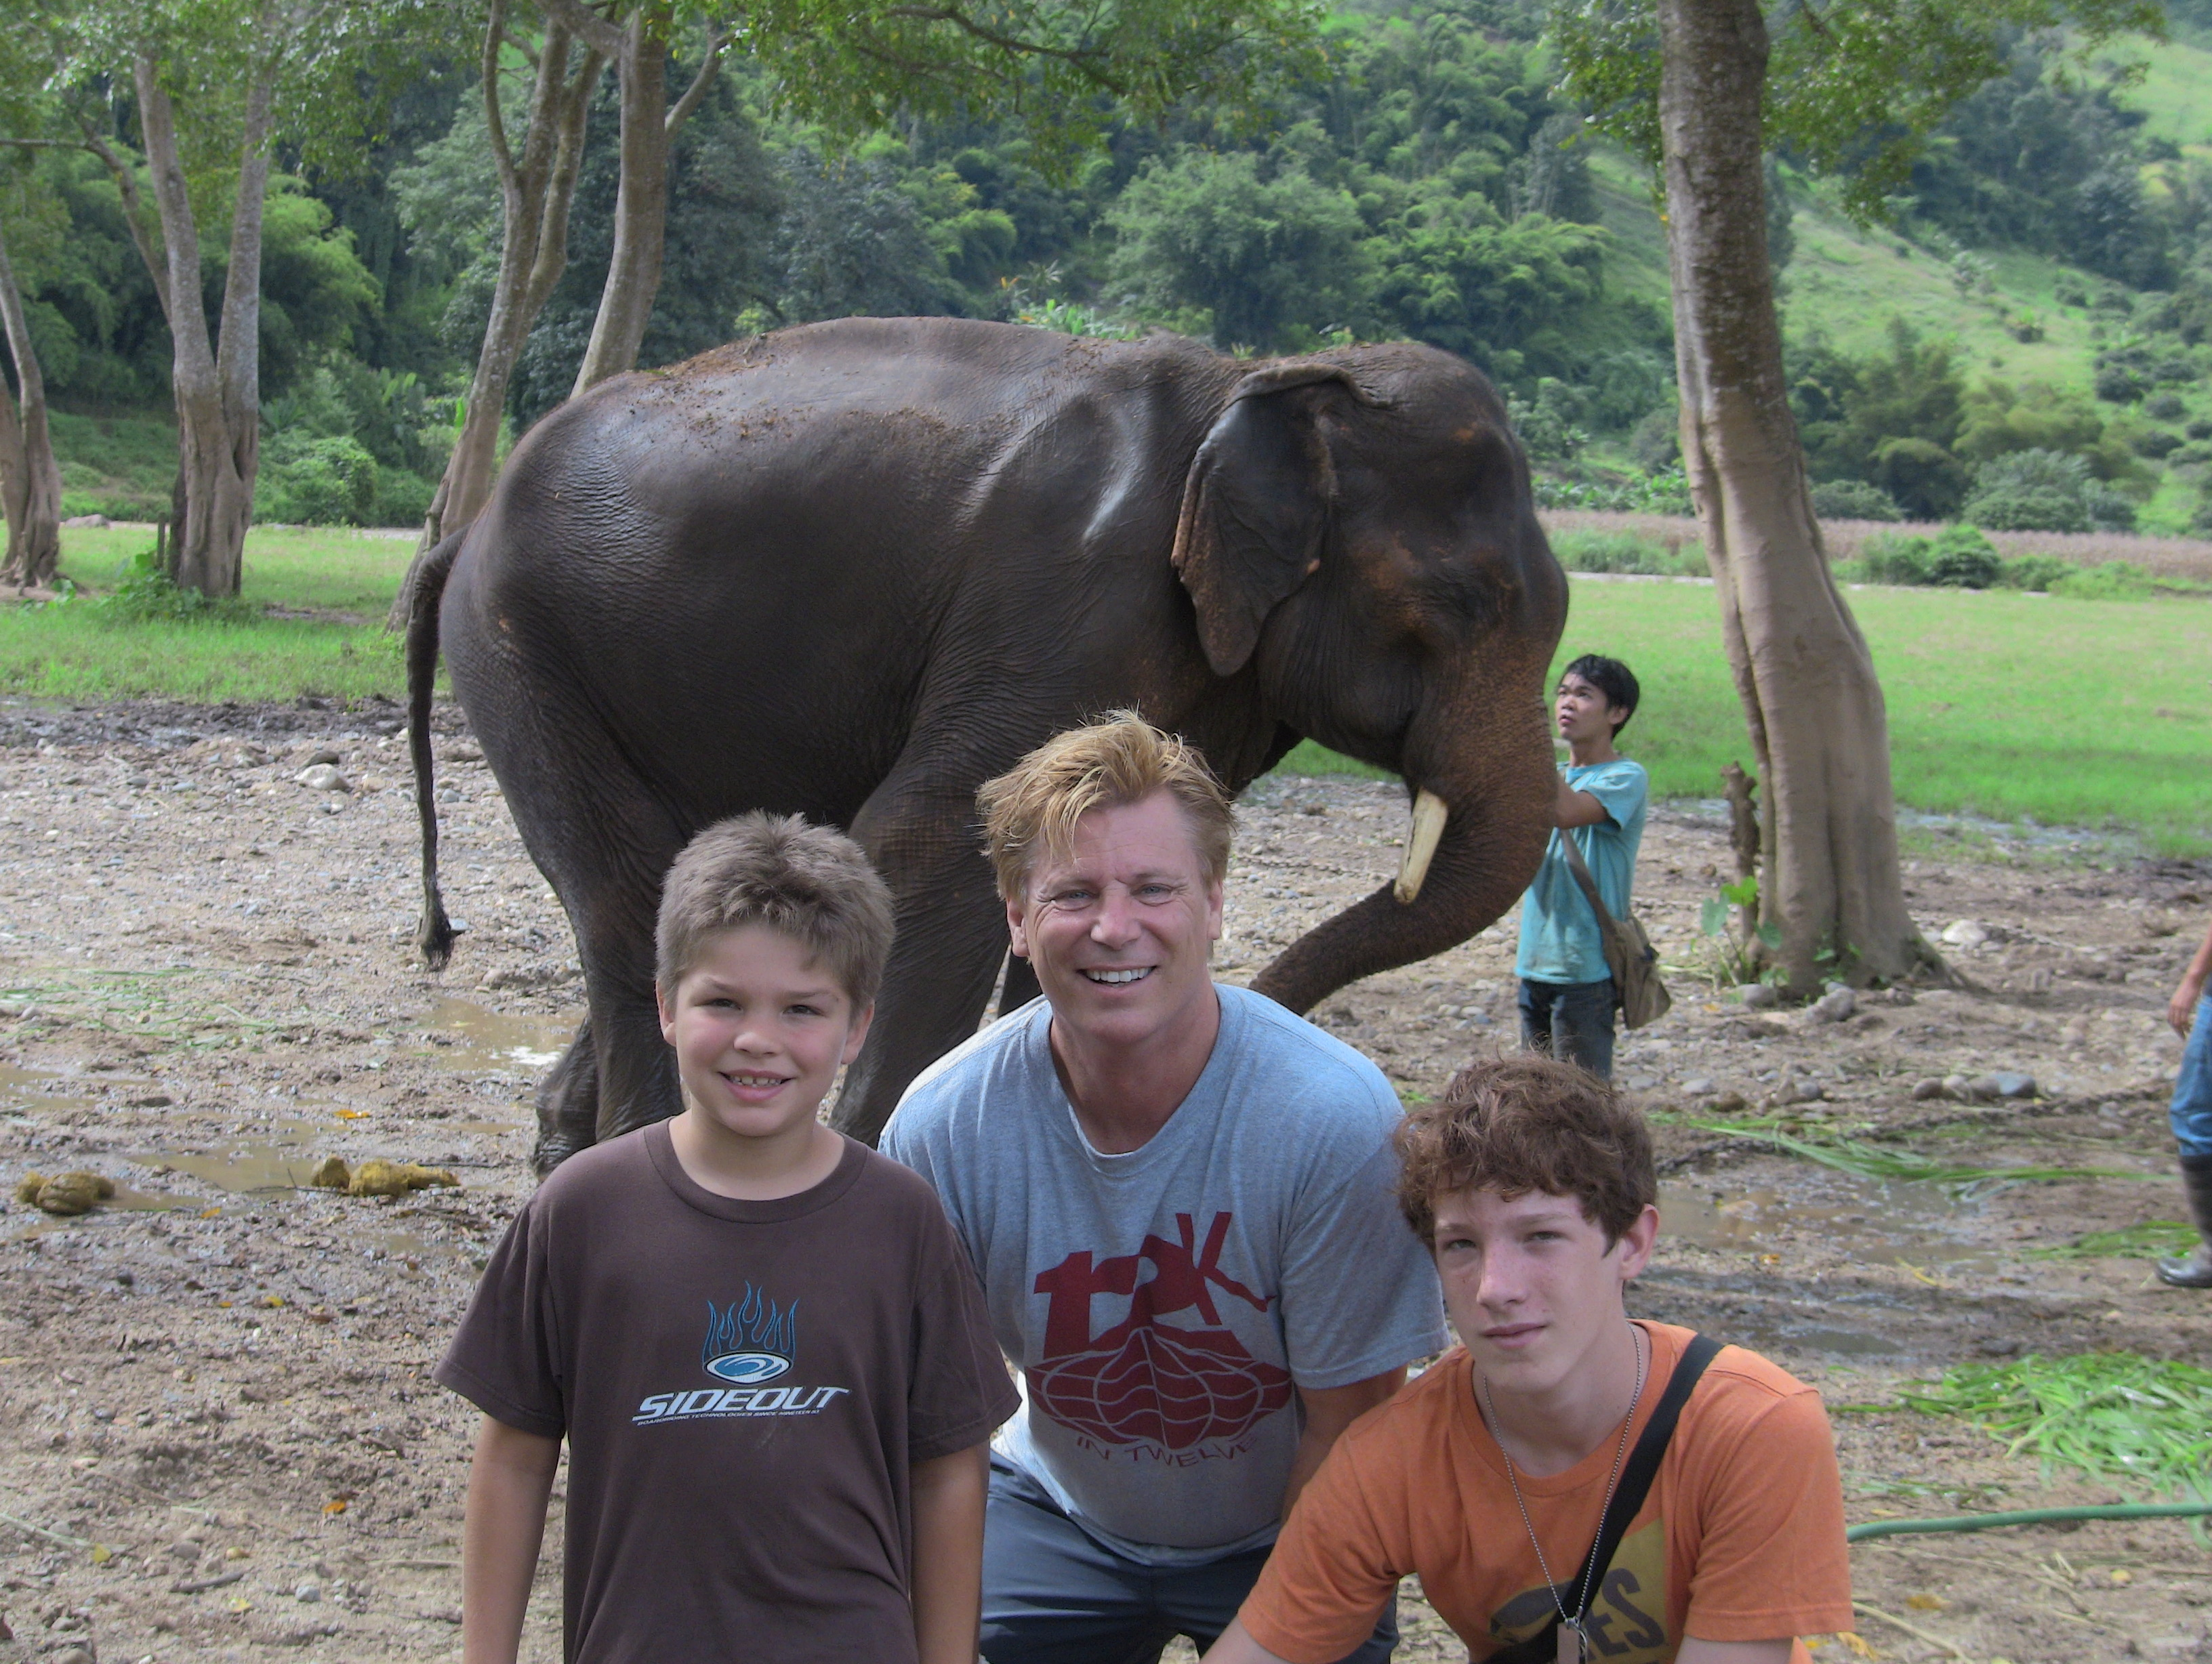 The Lewis family at Elephant Sanctuary